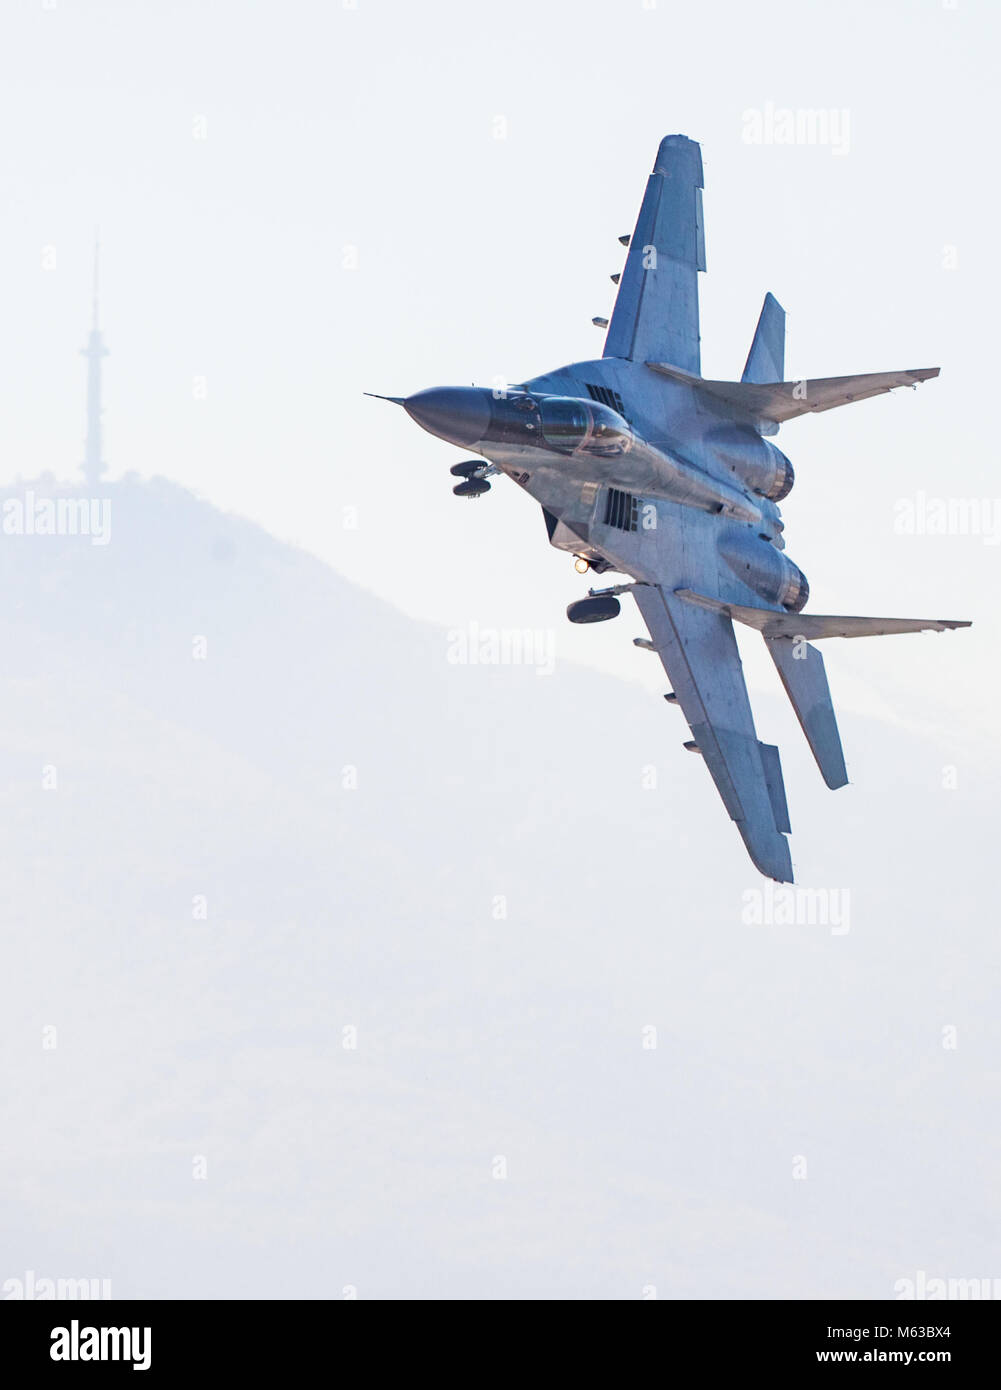 Fast Fighter Jet Flight - Stock Image